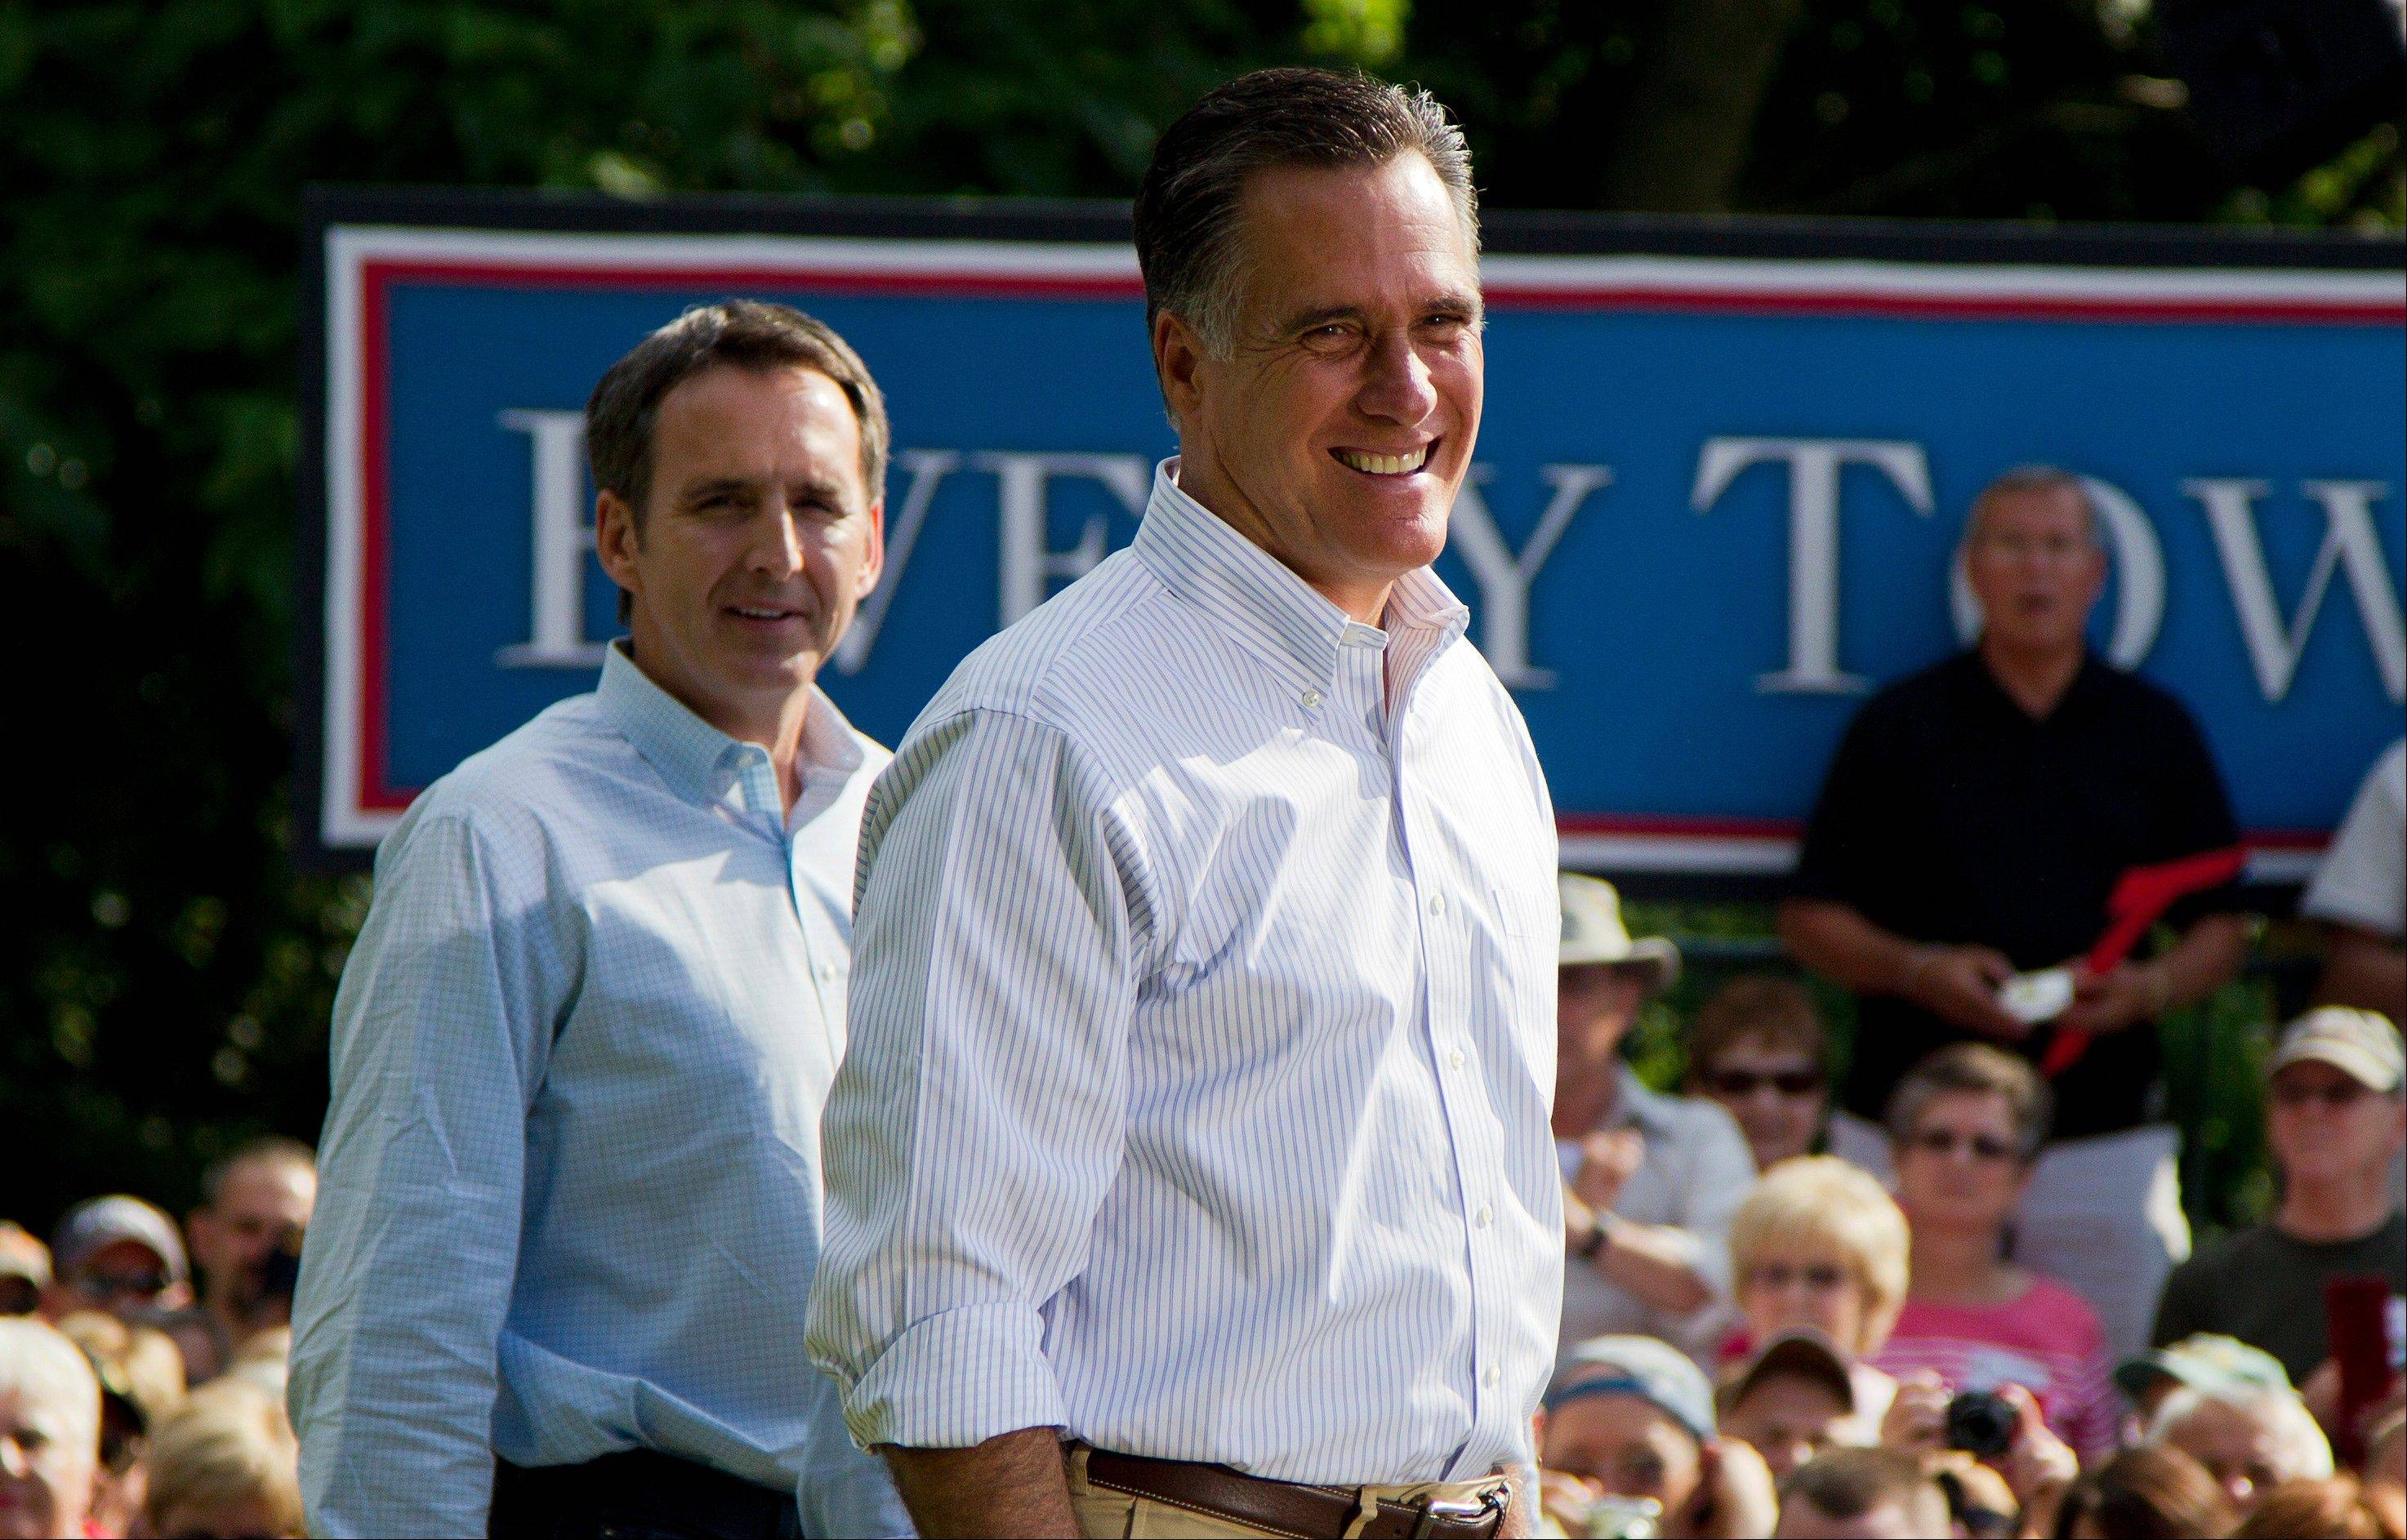 President Barack Obama and his Democratic allies aren't waiting for Mitt Romney to reveal his vice presidential choice. They're already trying to scuff up those considered by political insiders to be most likely to join the GOP ticket, including former Minnesota Gov. Tim Pawlenty.